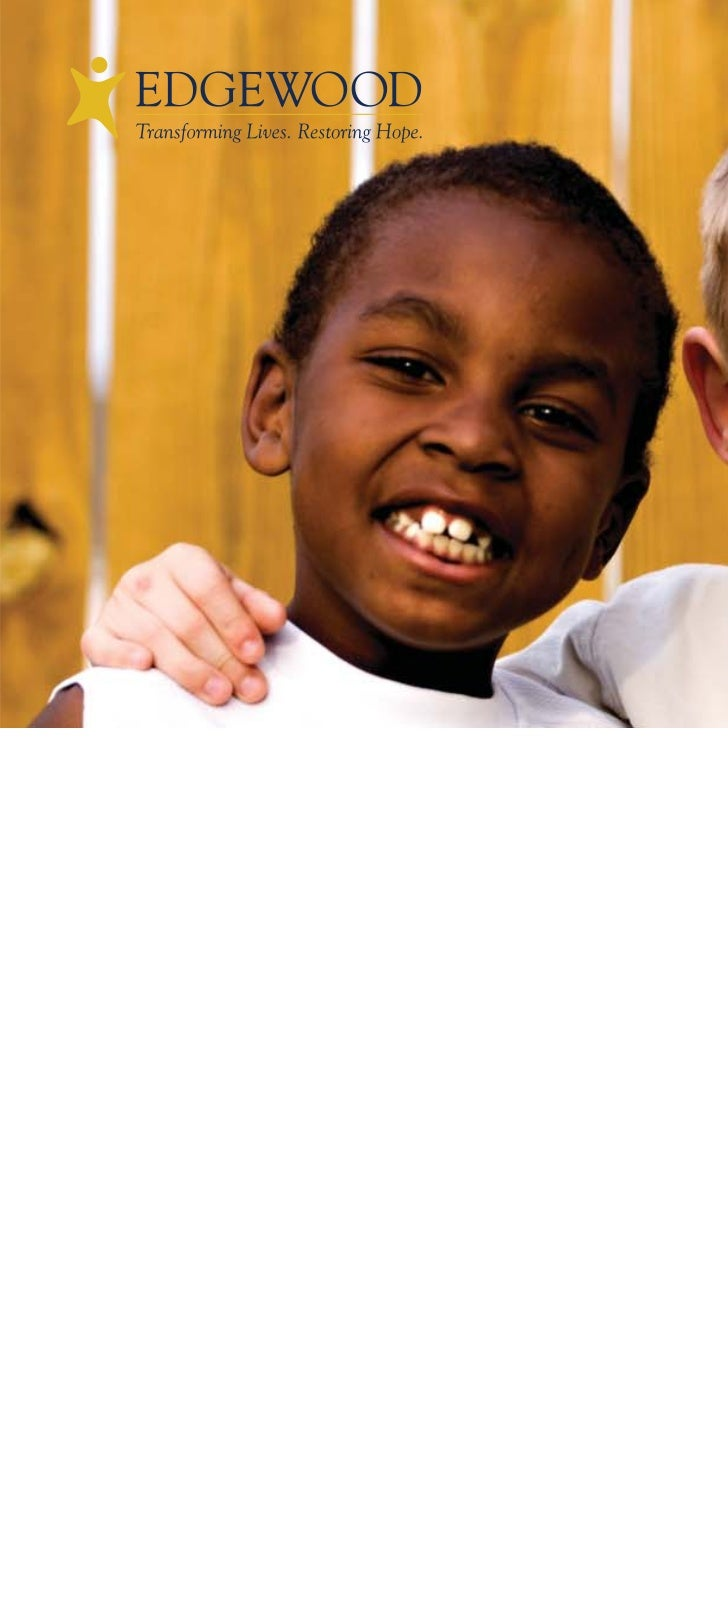 Help Edgewood buildbetter lives and brighterfutures for thousands ofSan Francisco Bay Areachildren and families.     Get I...